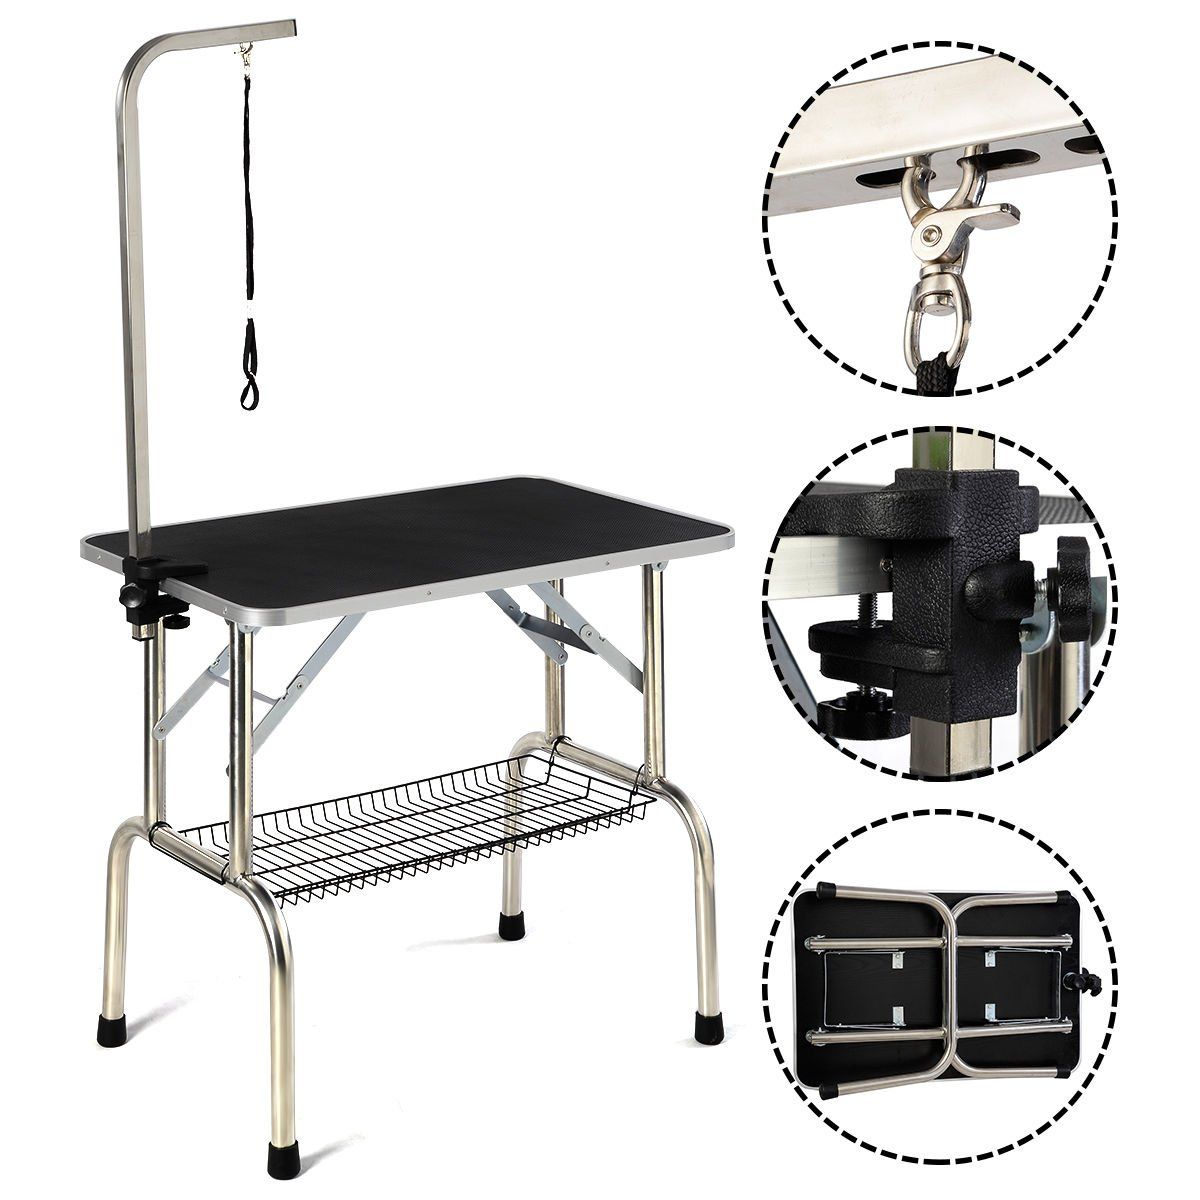 32 Large Portable Pet Dog Cat Grooming Table Dog Show W Arm Andnoose And Mesh Tray Want Additional Info Click On Cat Grooming Cat Grooming Tools Dog Show